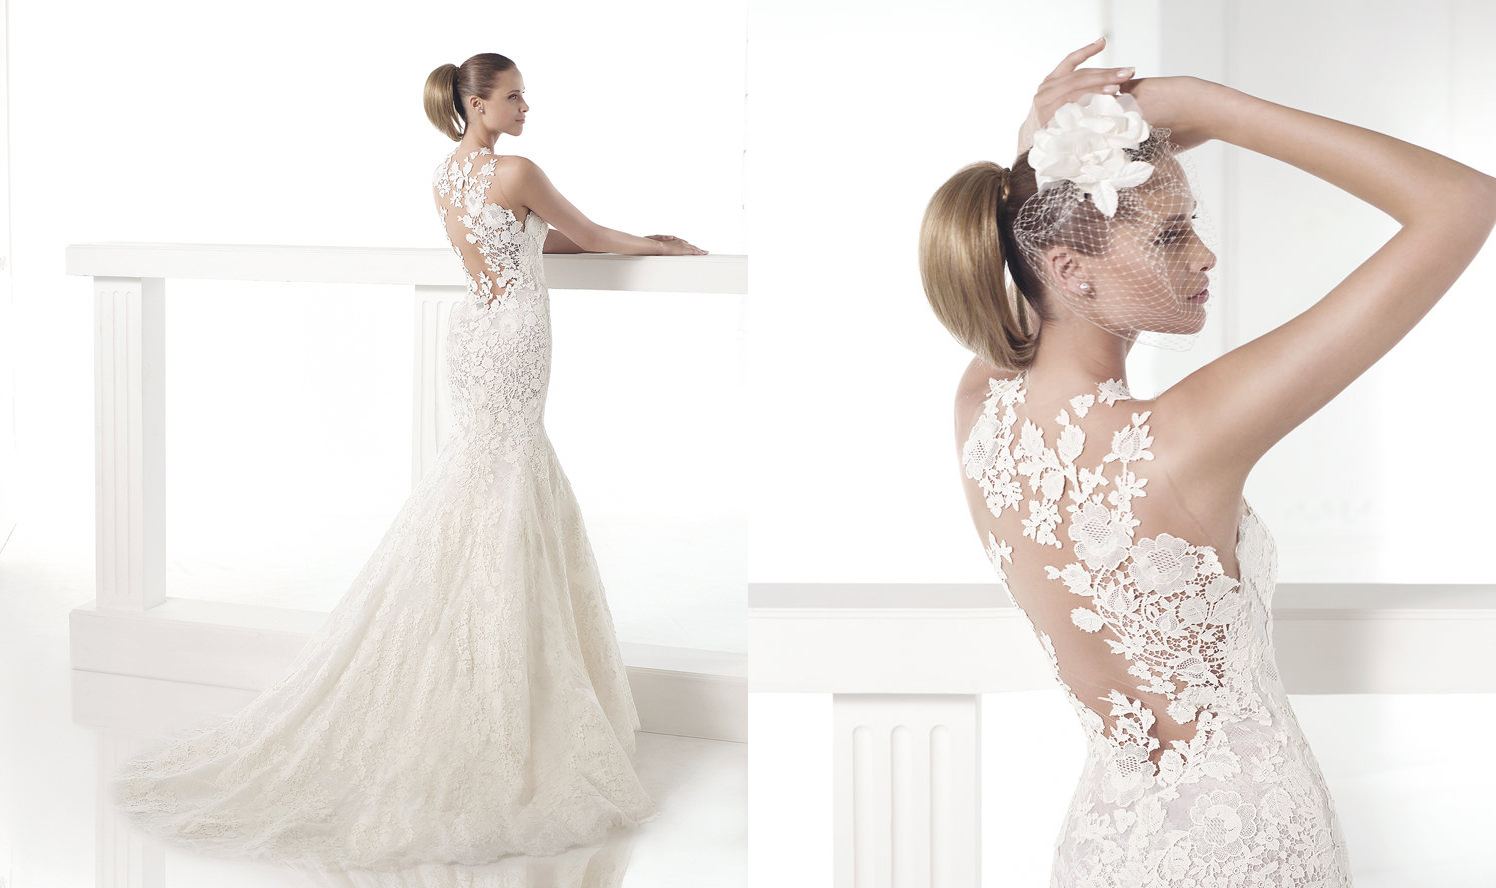 Pronivias-2015-modello-carezza 86db1d57902